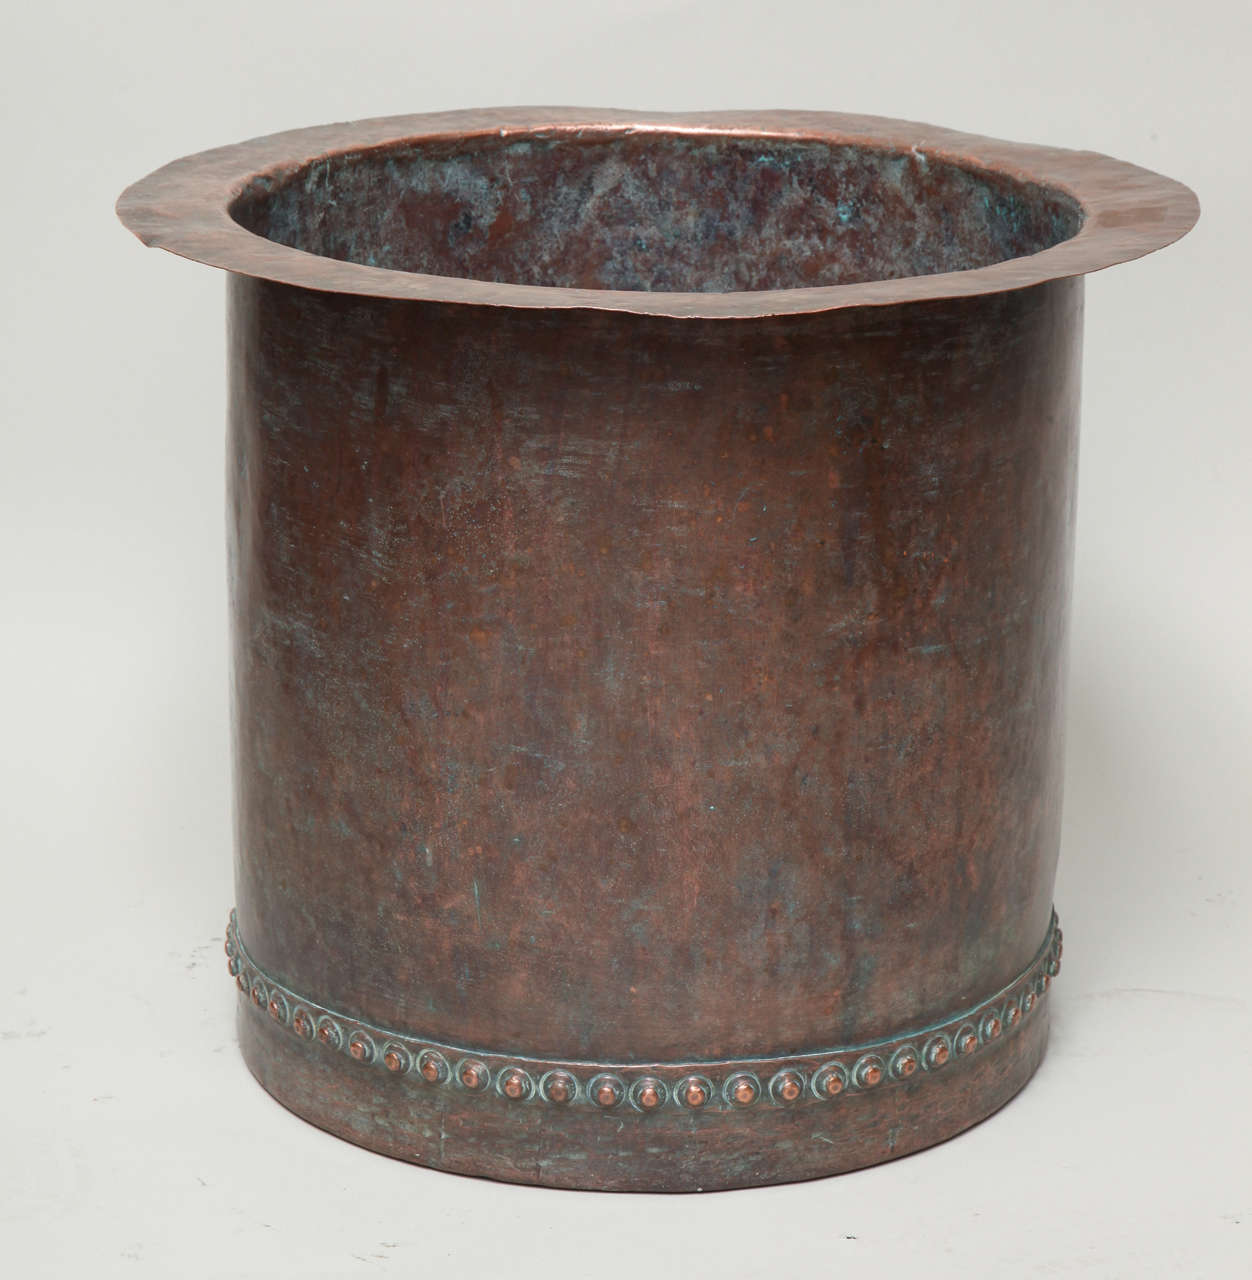 A fantastic riveted copper oversize log bin having beautiful bronzed patina, England, early 19th century.